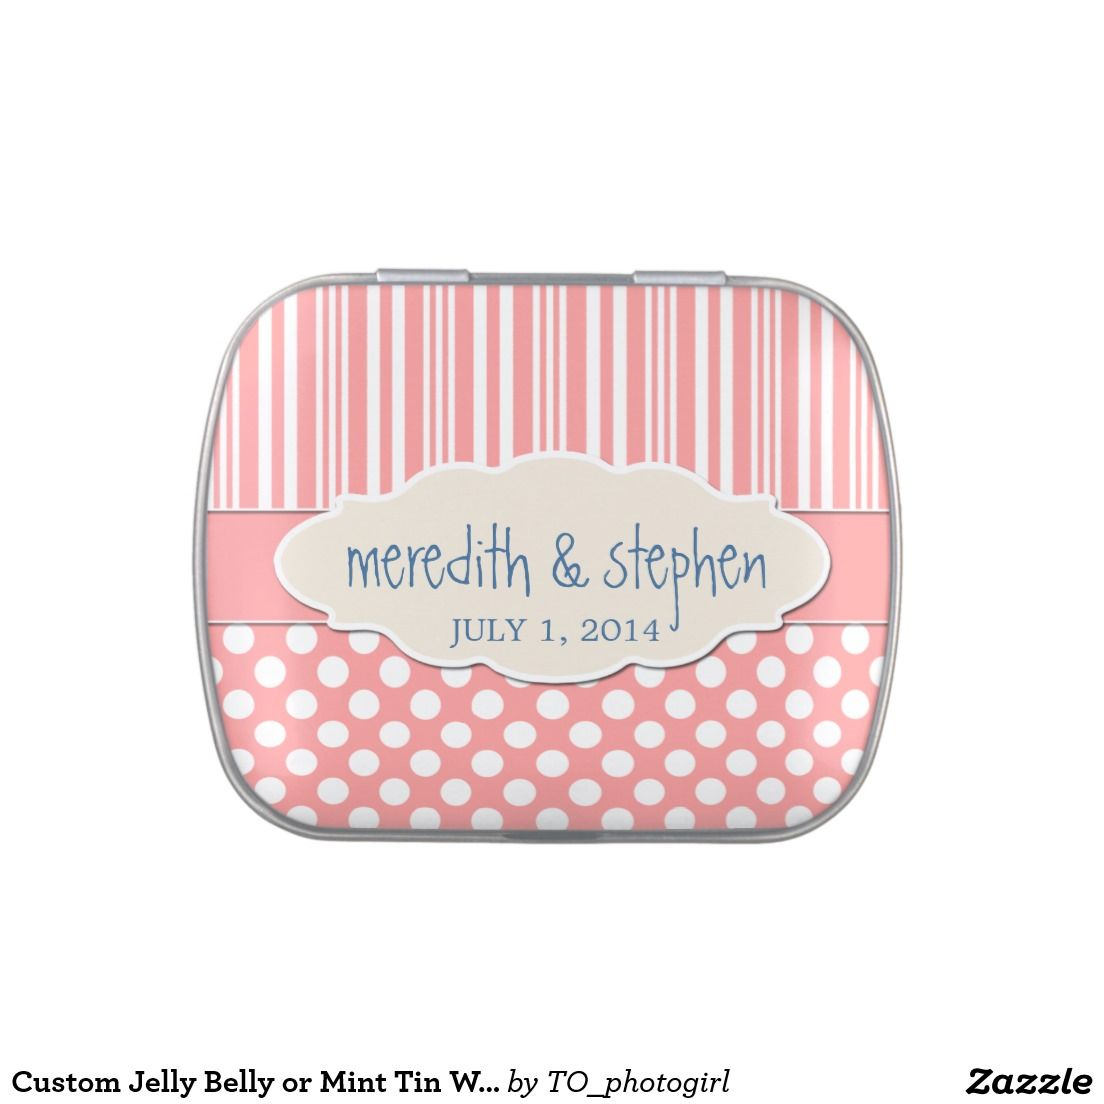 Custom Jelly Belly or Mint Tin Wedding Favor | Favours, Wedding and ...